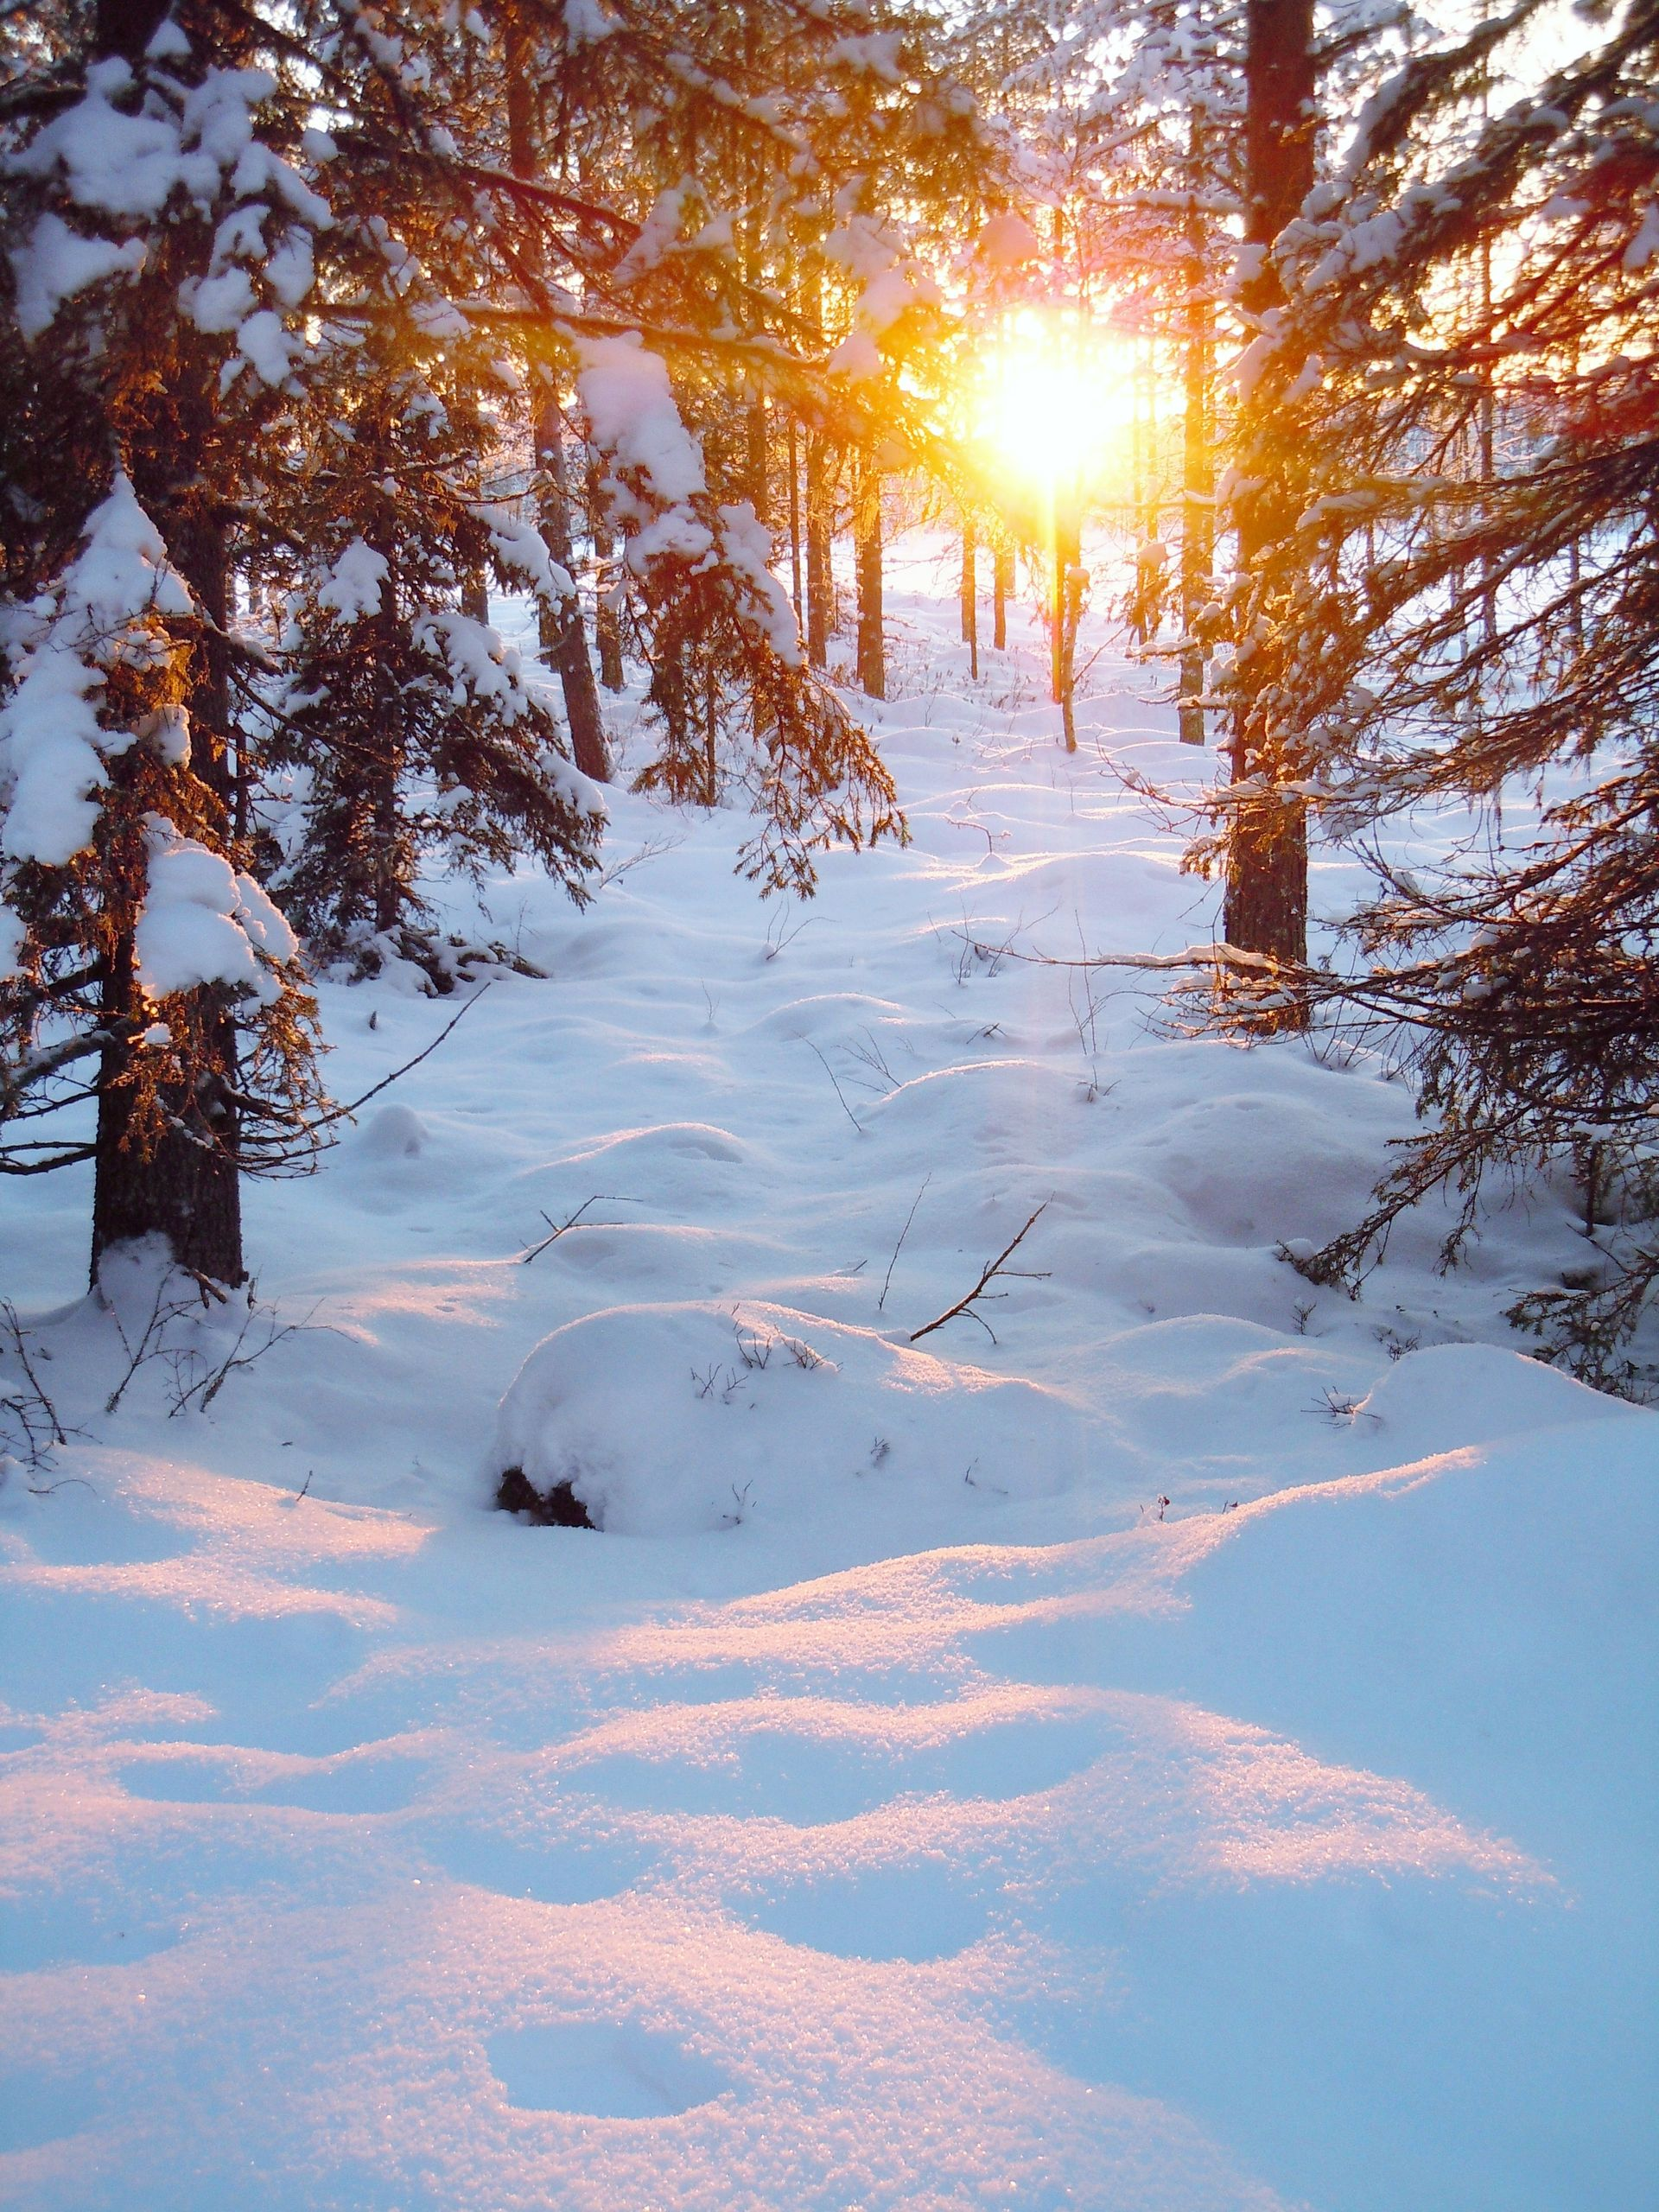 Snowshoe hiking in Lapland